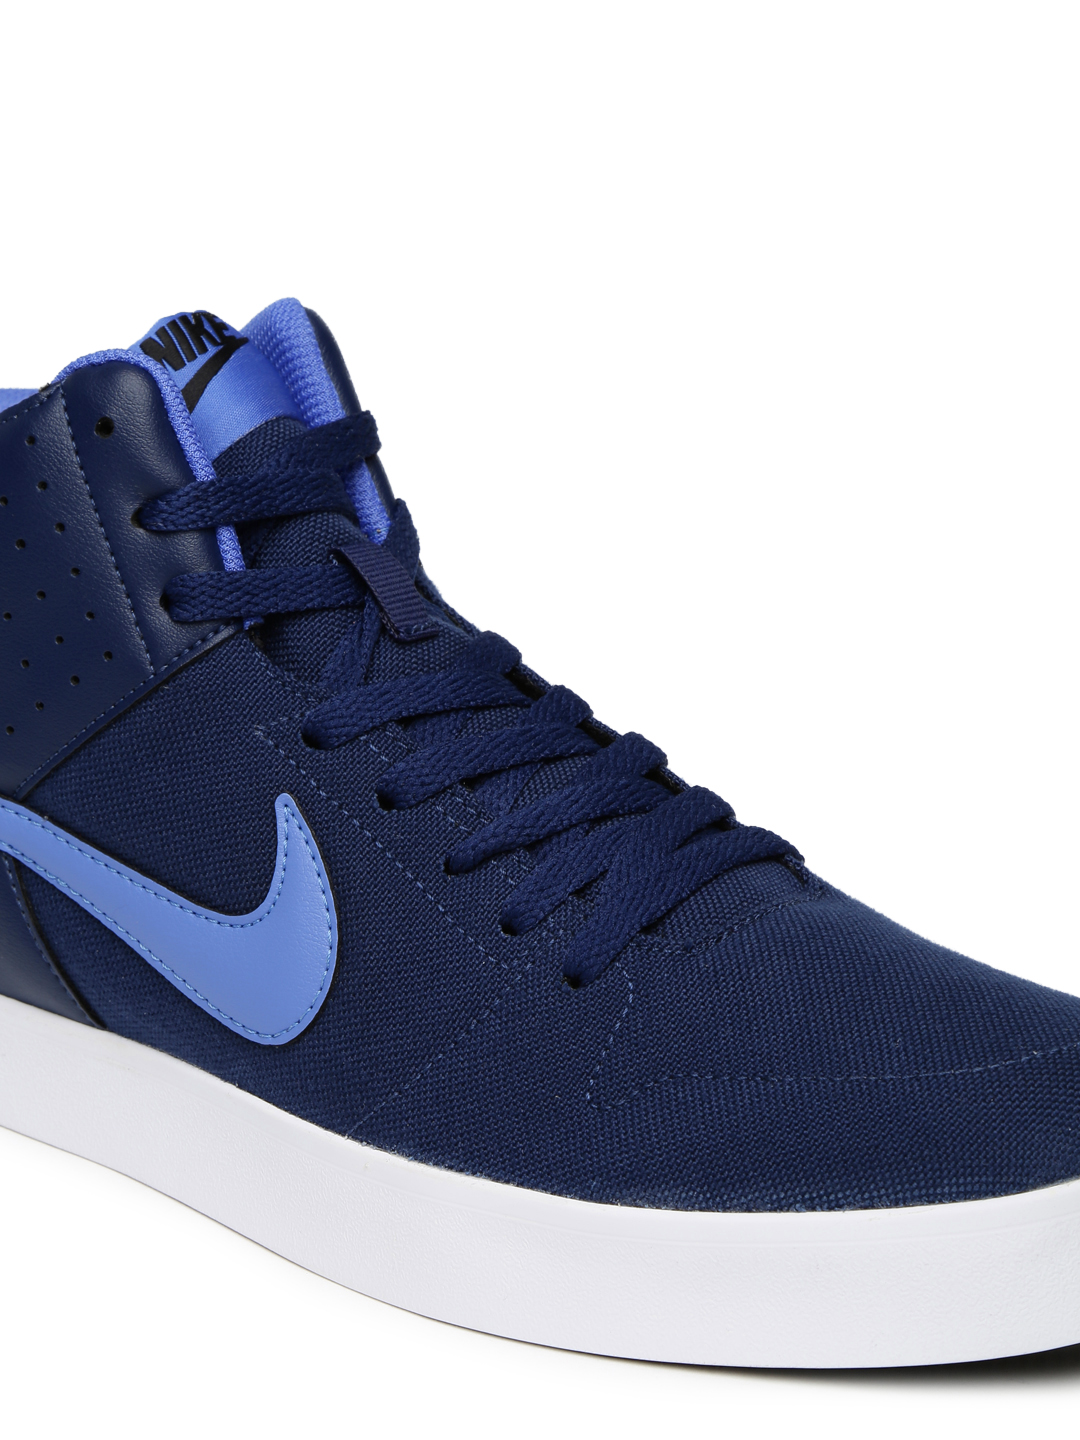 Buy Basketball Shoes Online Nike